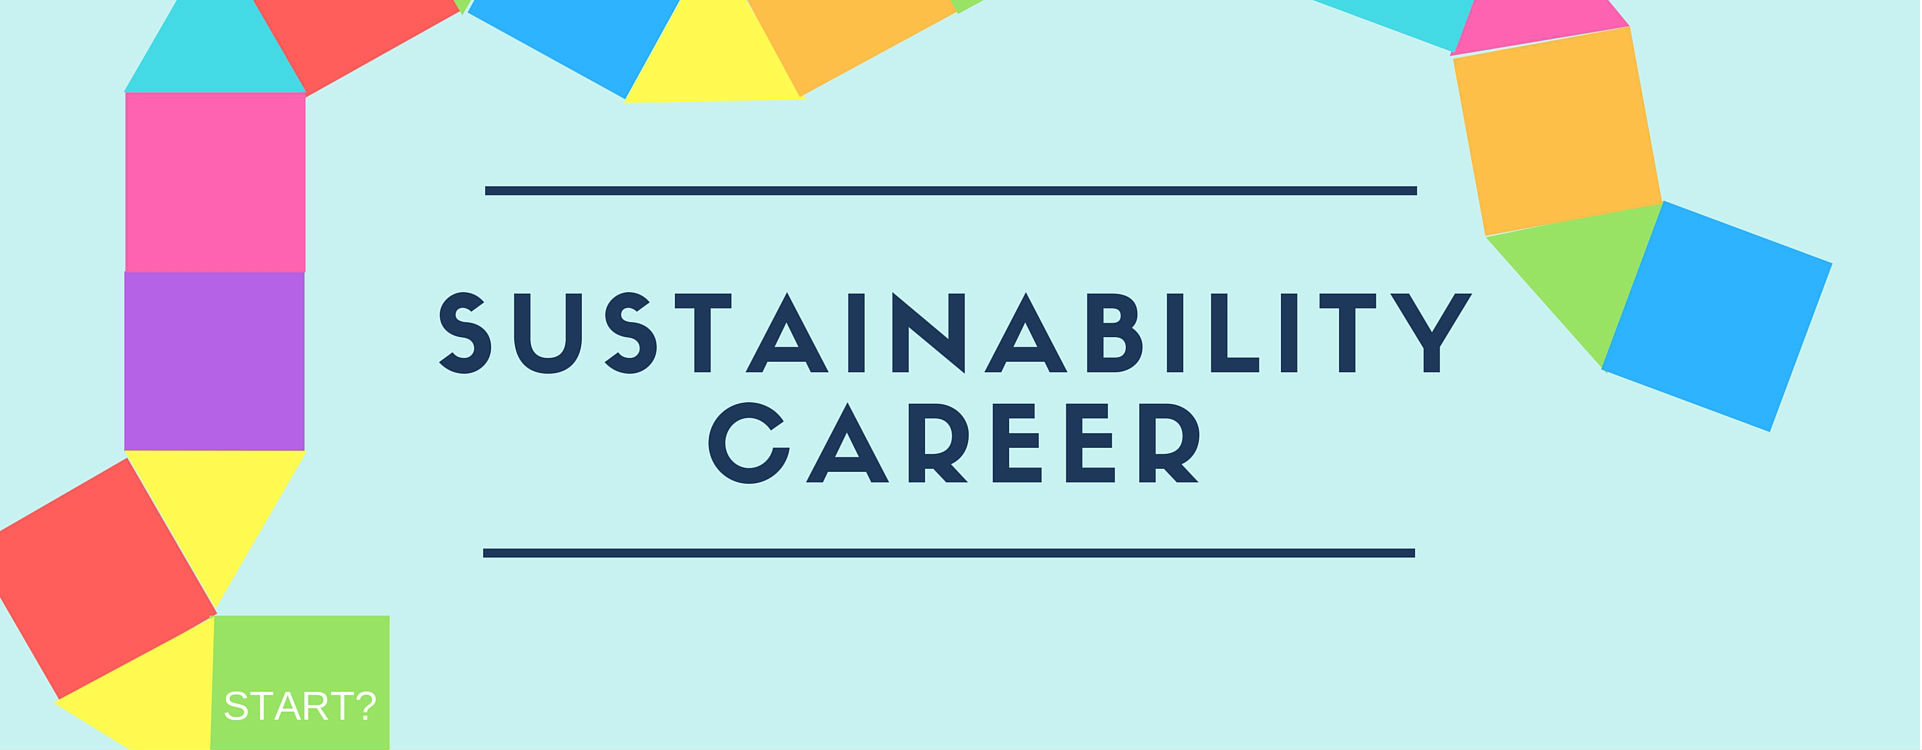 6 Ways to Get Sustainability Job Experience That Boosts Your Resume